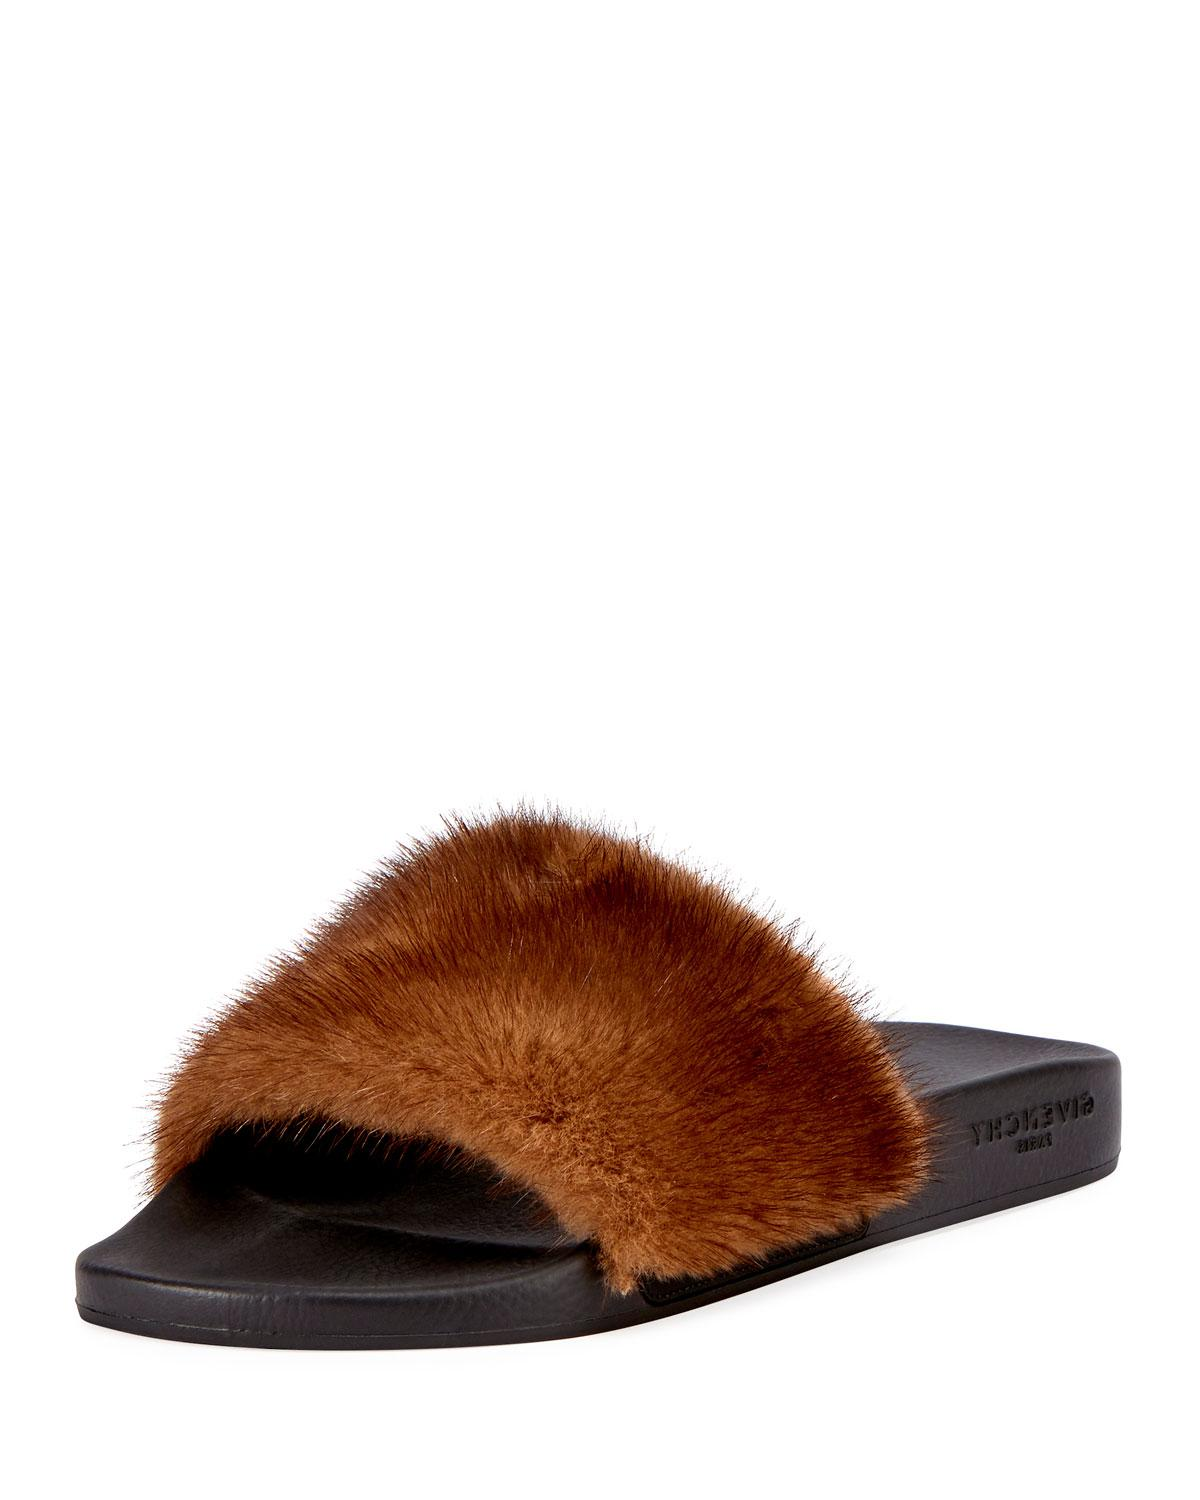 2b5293d6af34 Givenchy mens mink fur slide sandal in brown for men lyst jpg 1200x1500  Givenchy mink slides